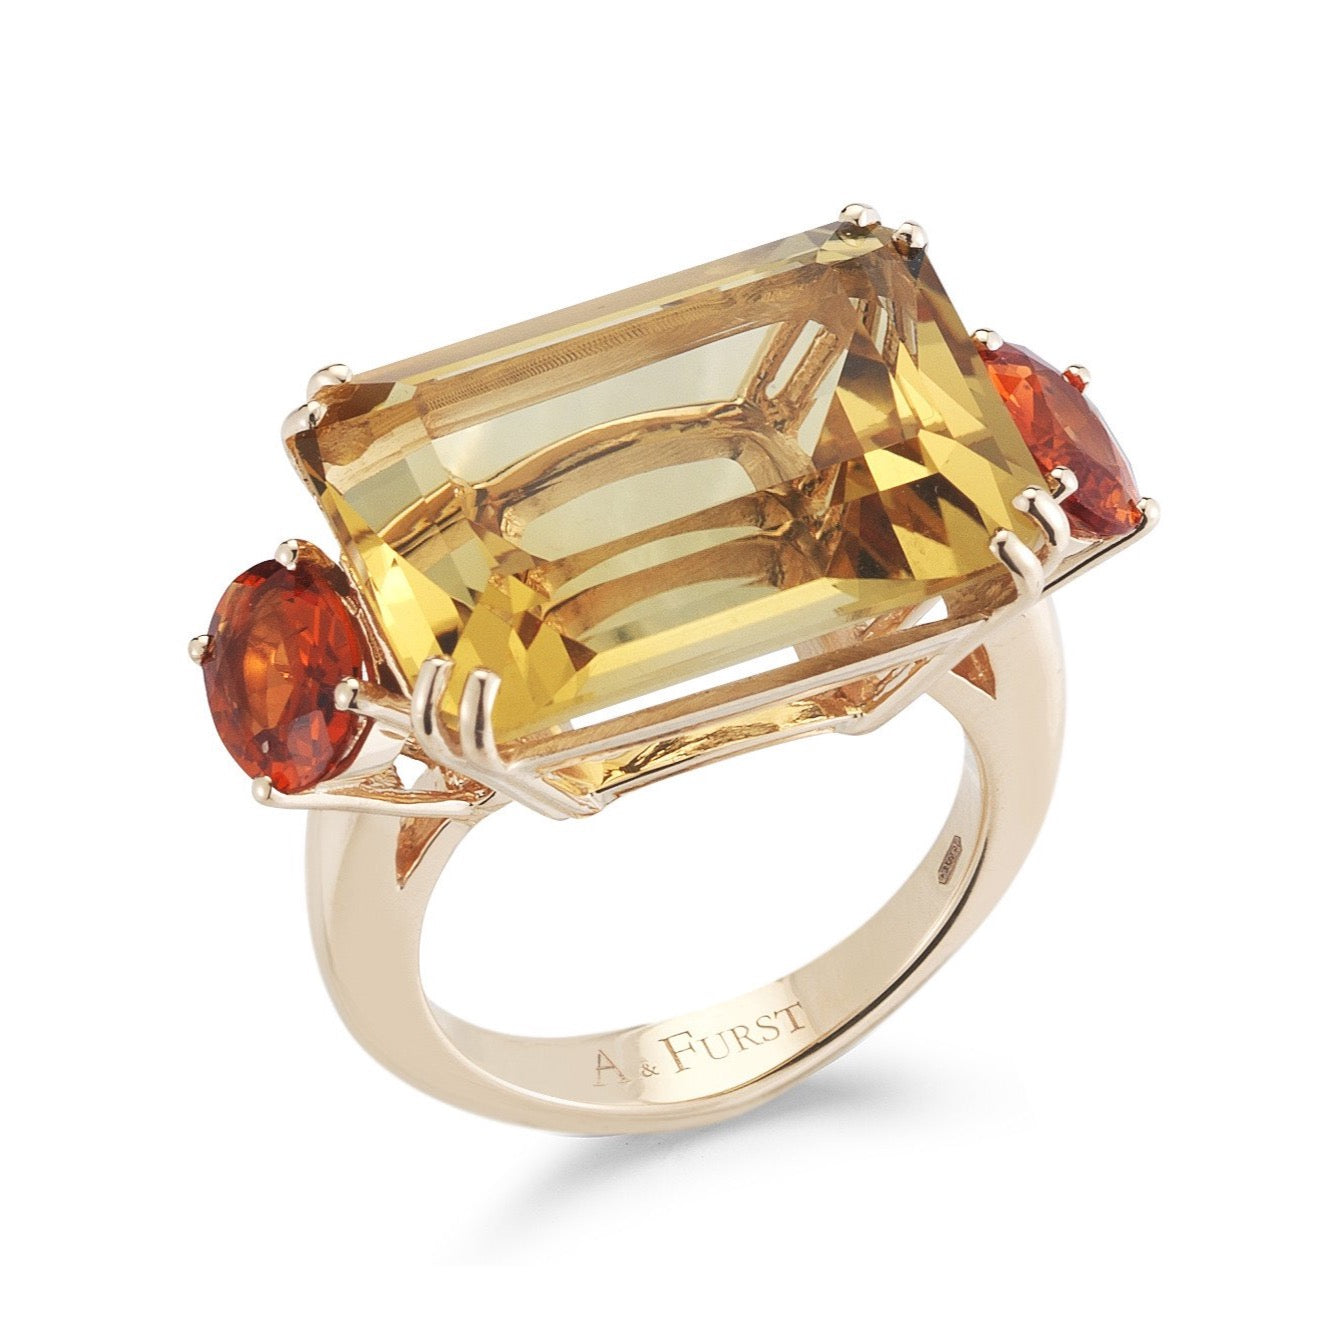 "A & Furst ""Party"" Cocktail Ring with Citrine and Orange Sapphires, 18k Rose Gold."